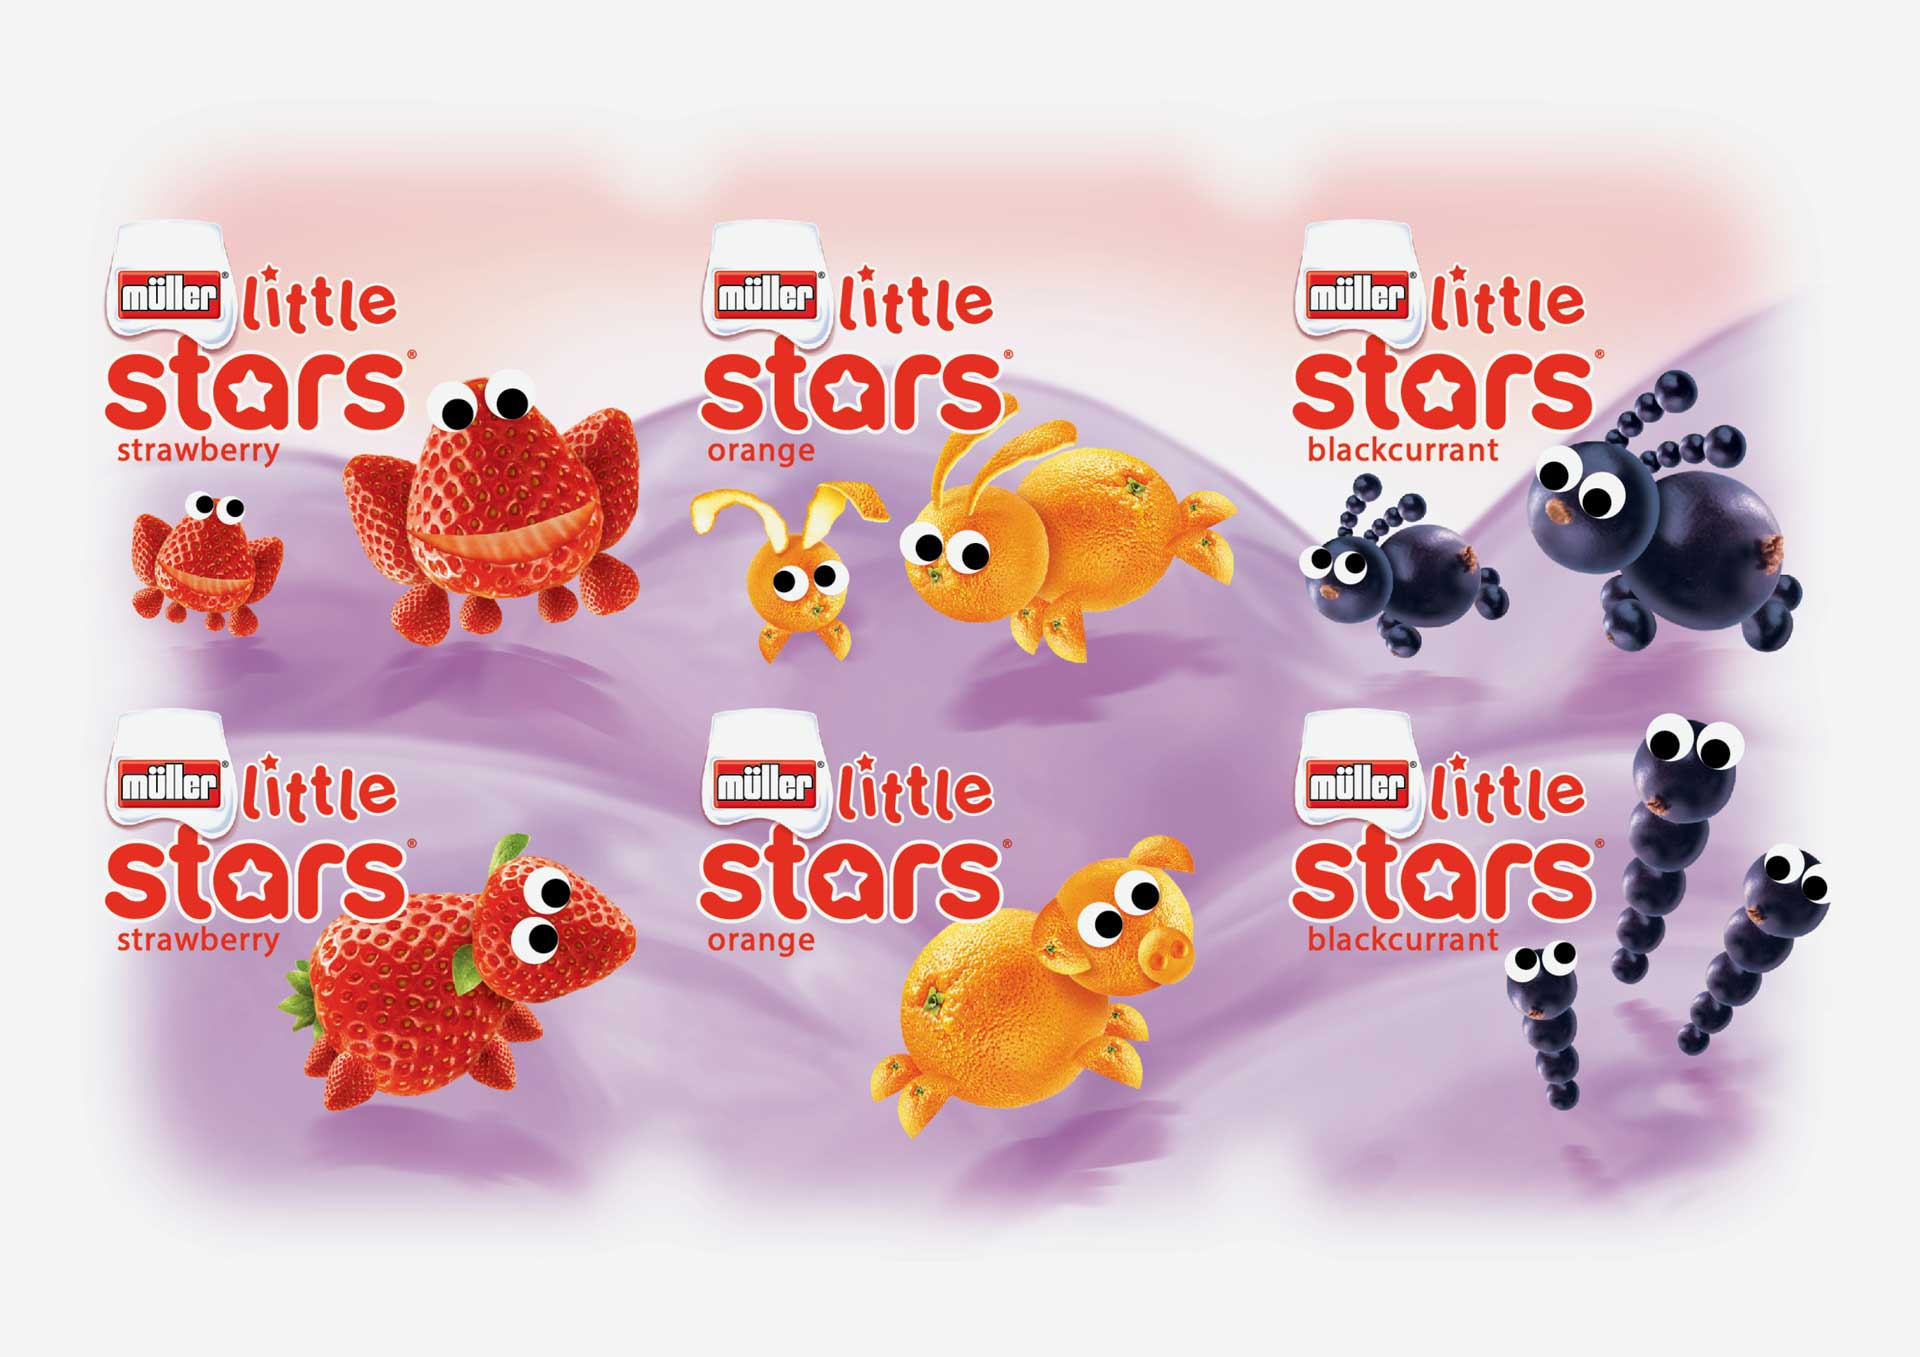 muller-little-stars-packaging-2